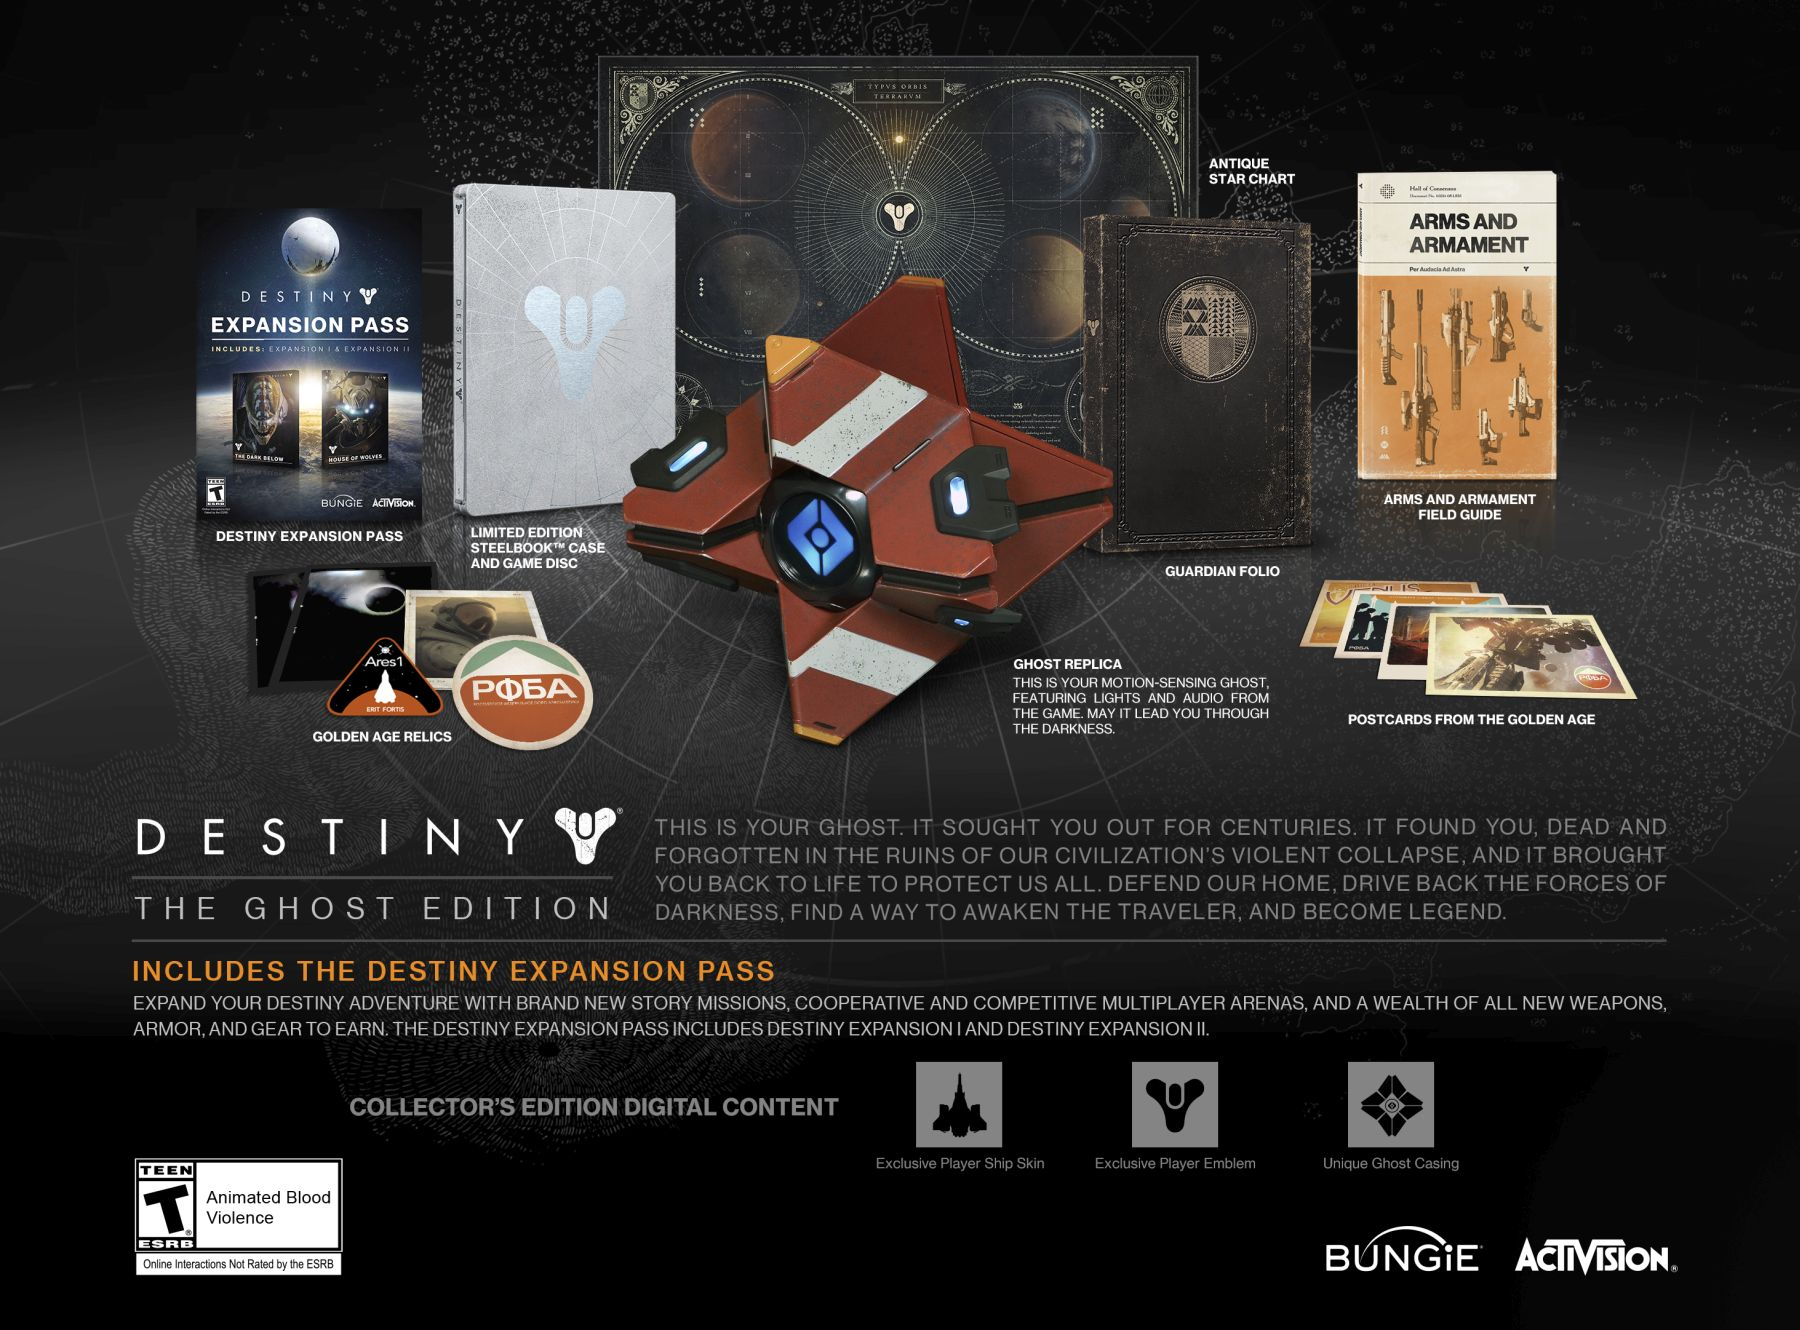 destiny_ghost_edition_info_sheet